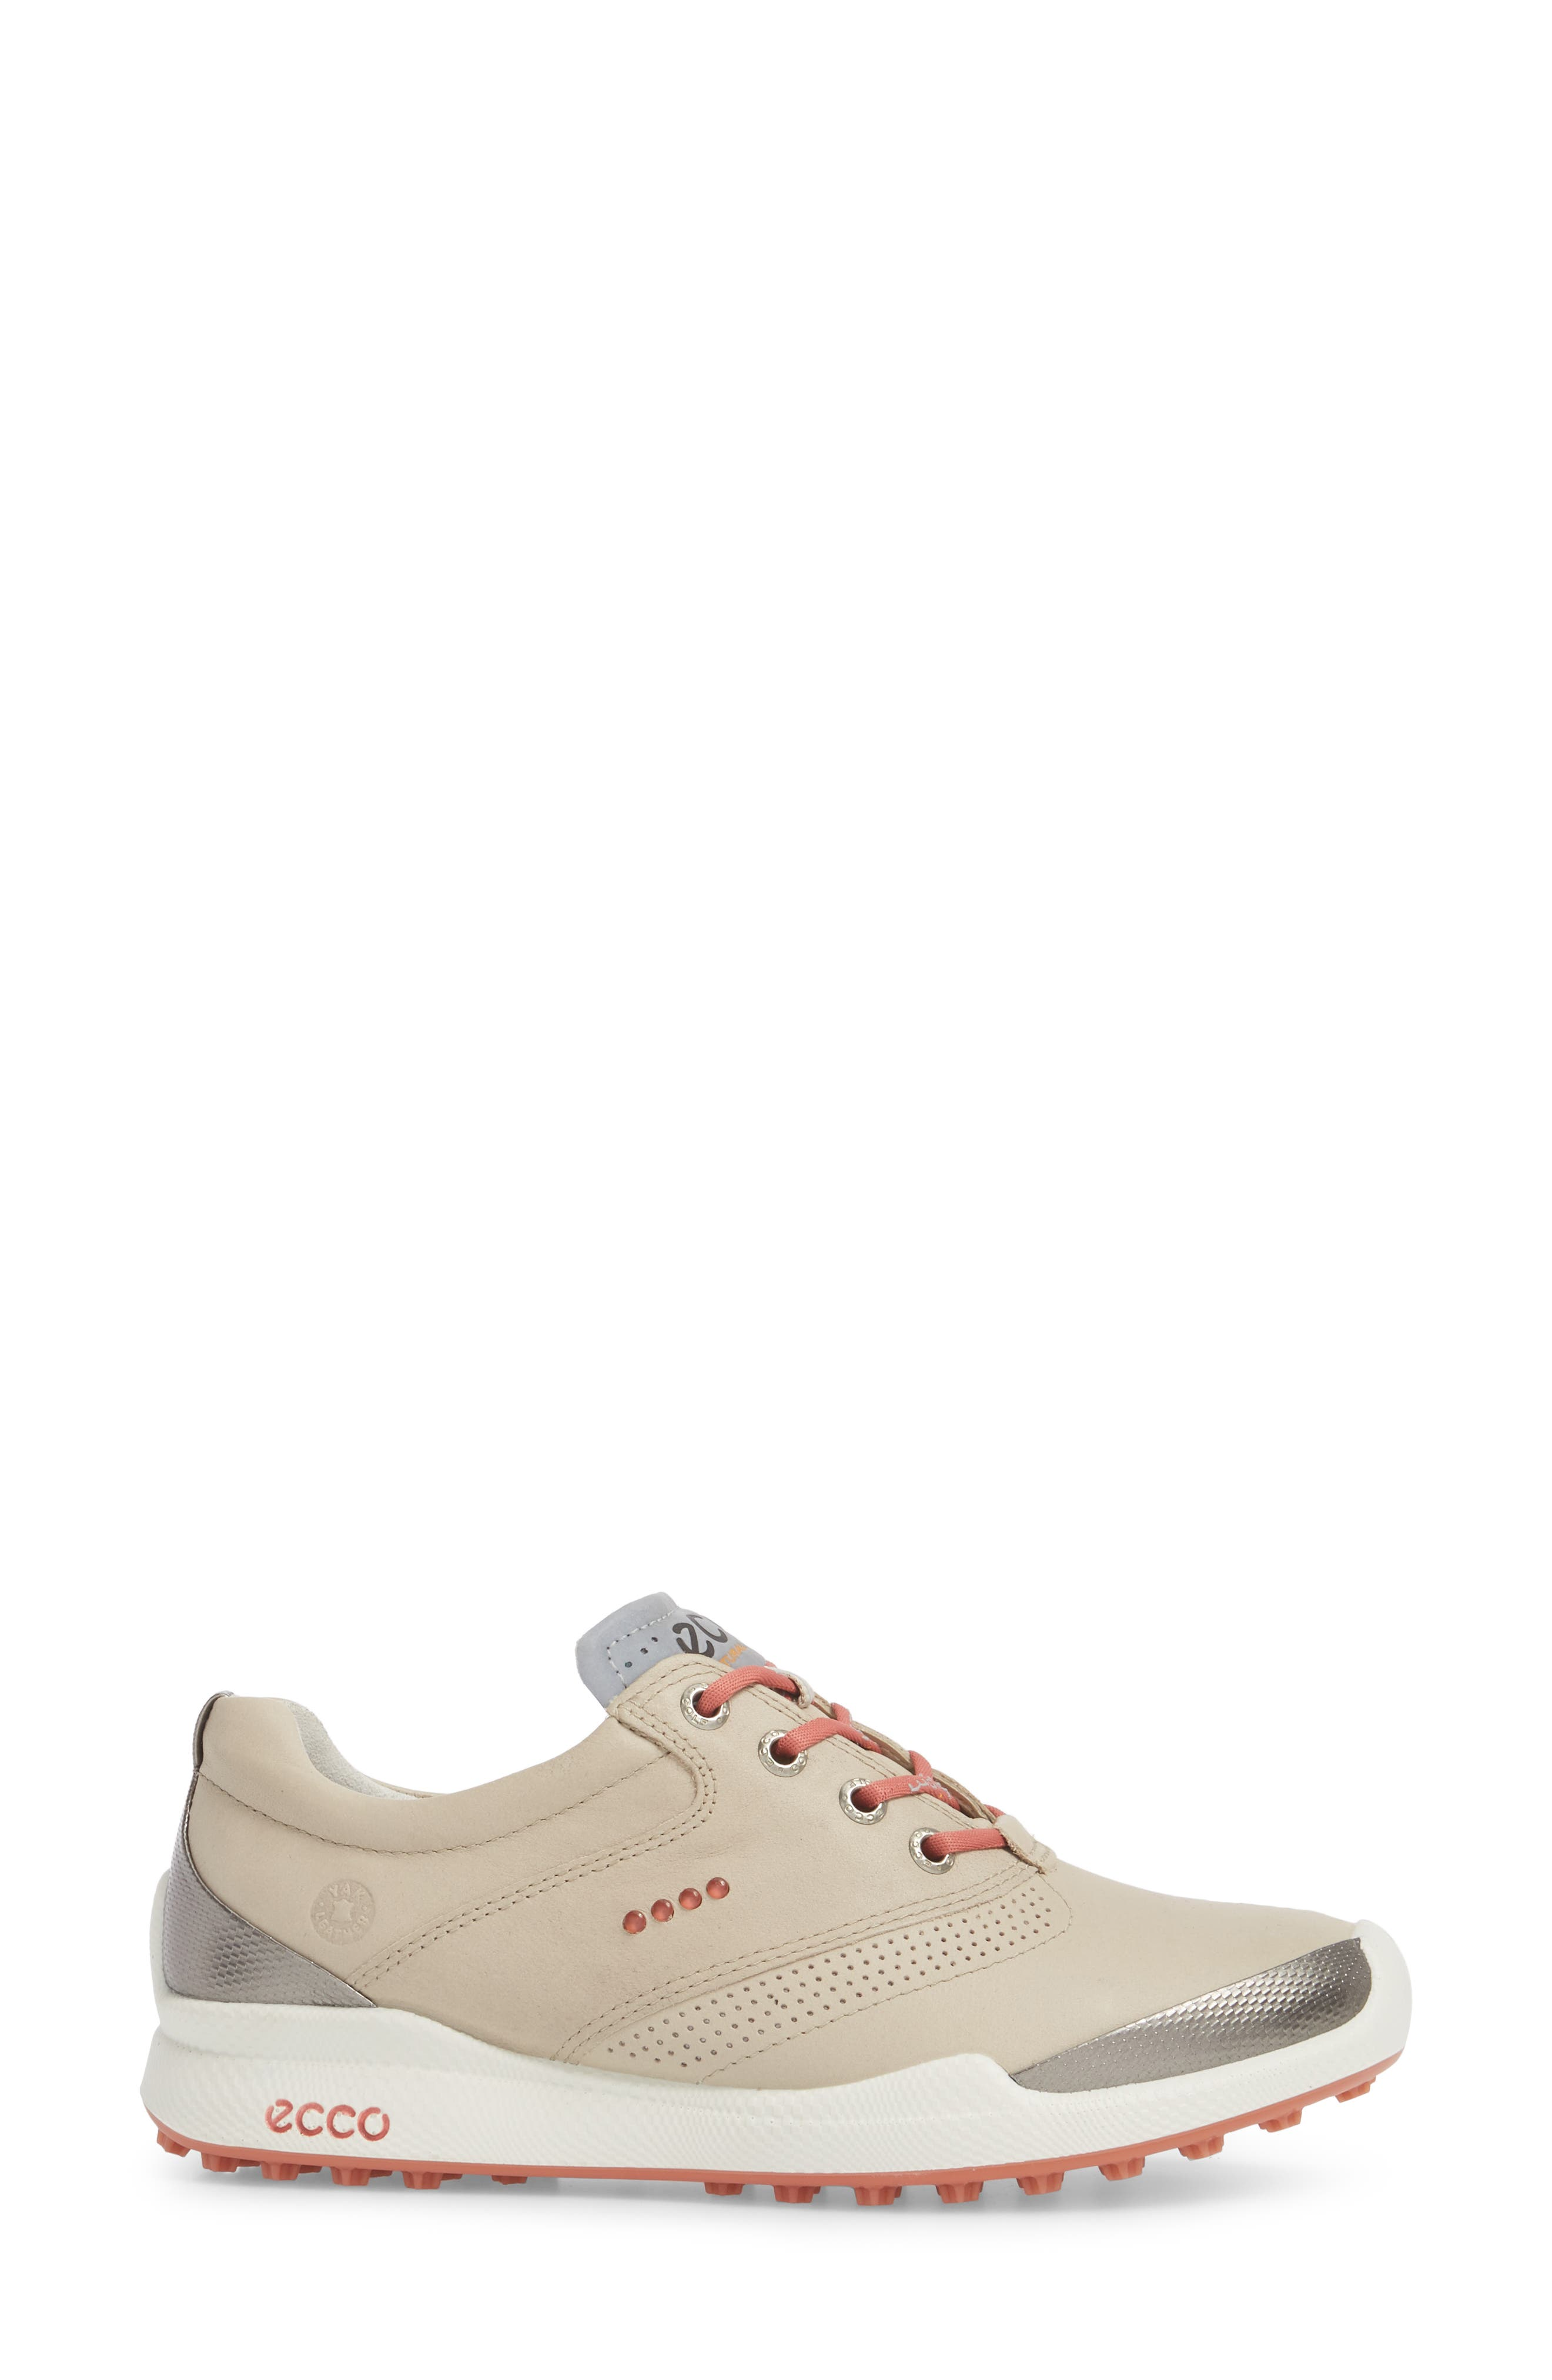 Biom Hybrid Golf Shoe,                             Alternate thumbnail 3, color,                             Oyster Leather